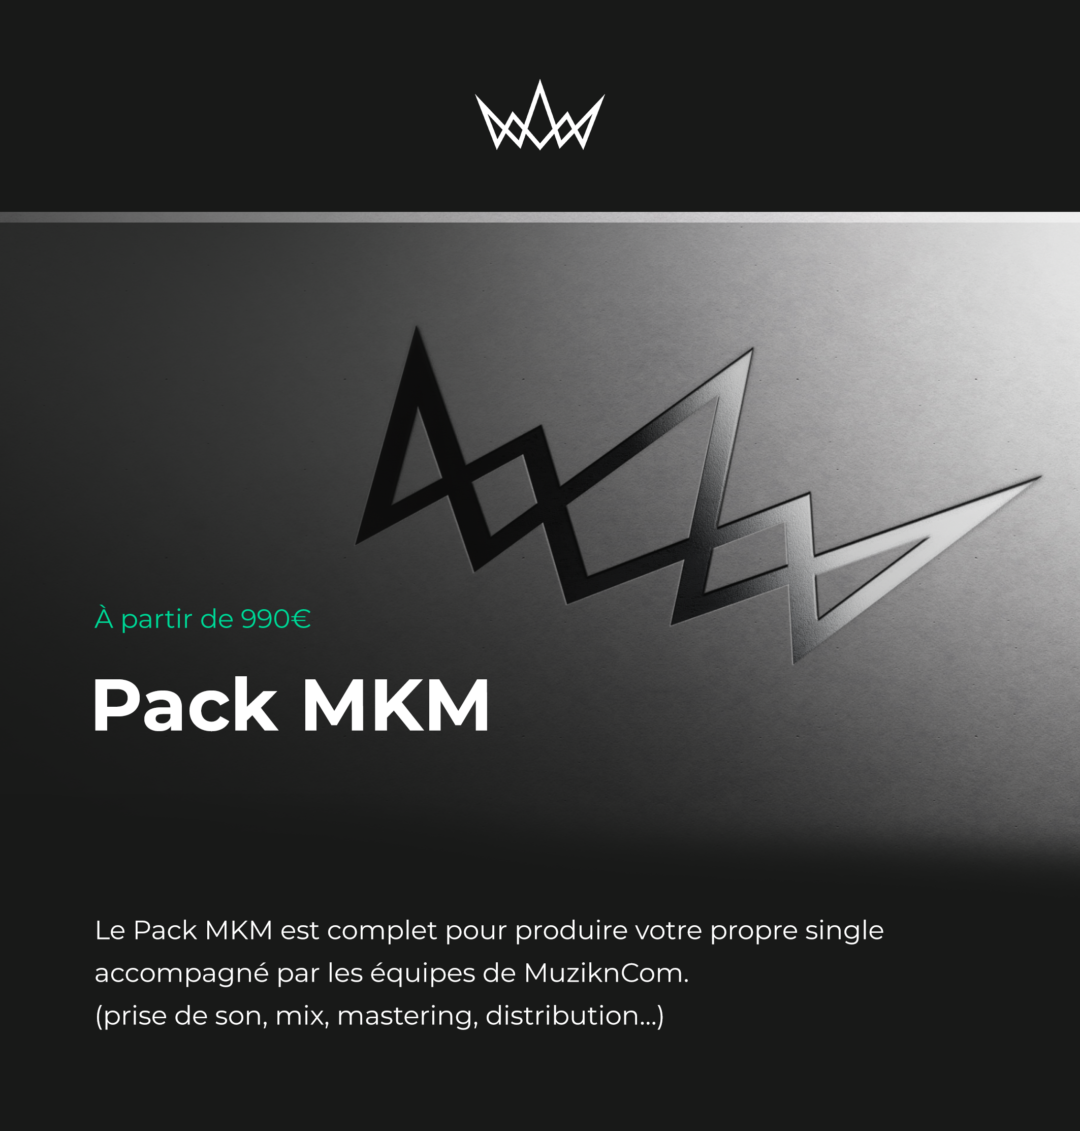 PackMKM